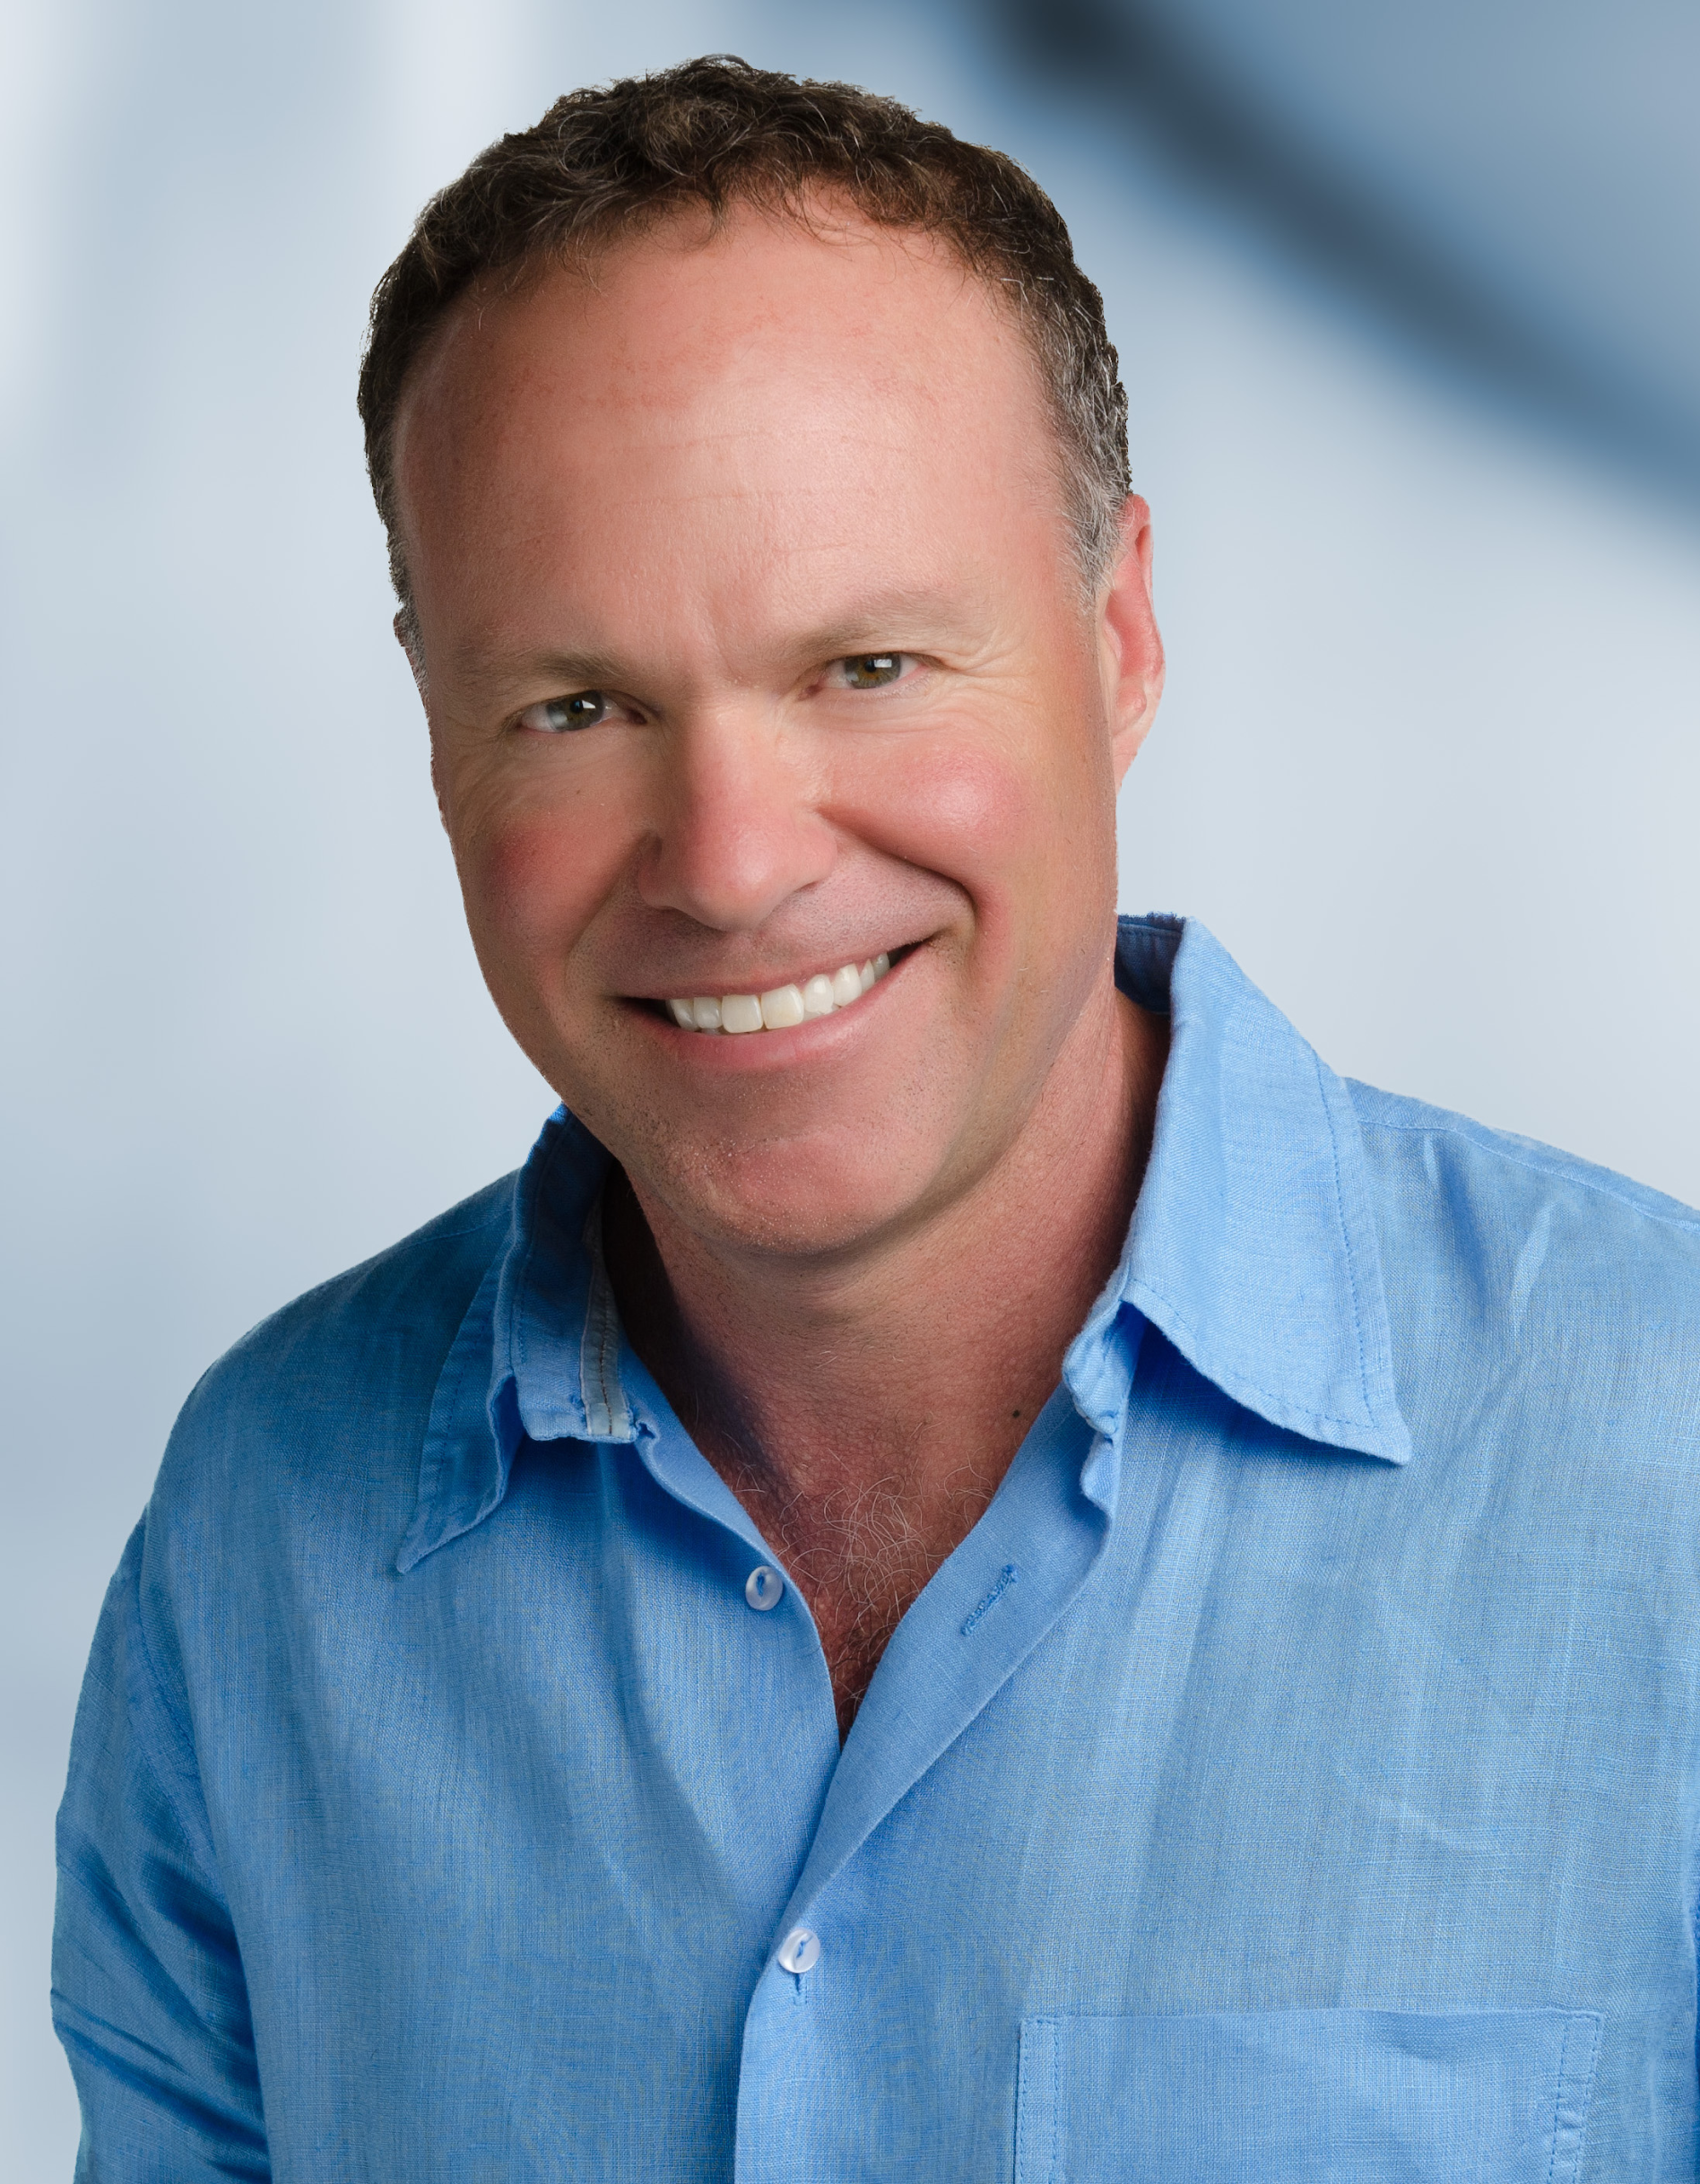 Former Co-Founder, CEO and Chairman of HomeAway - Brian Sharples